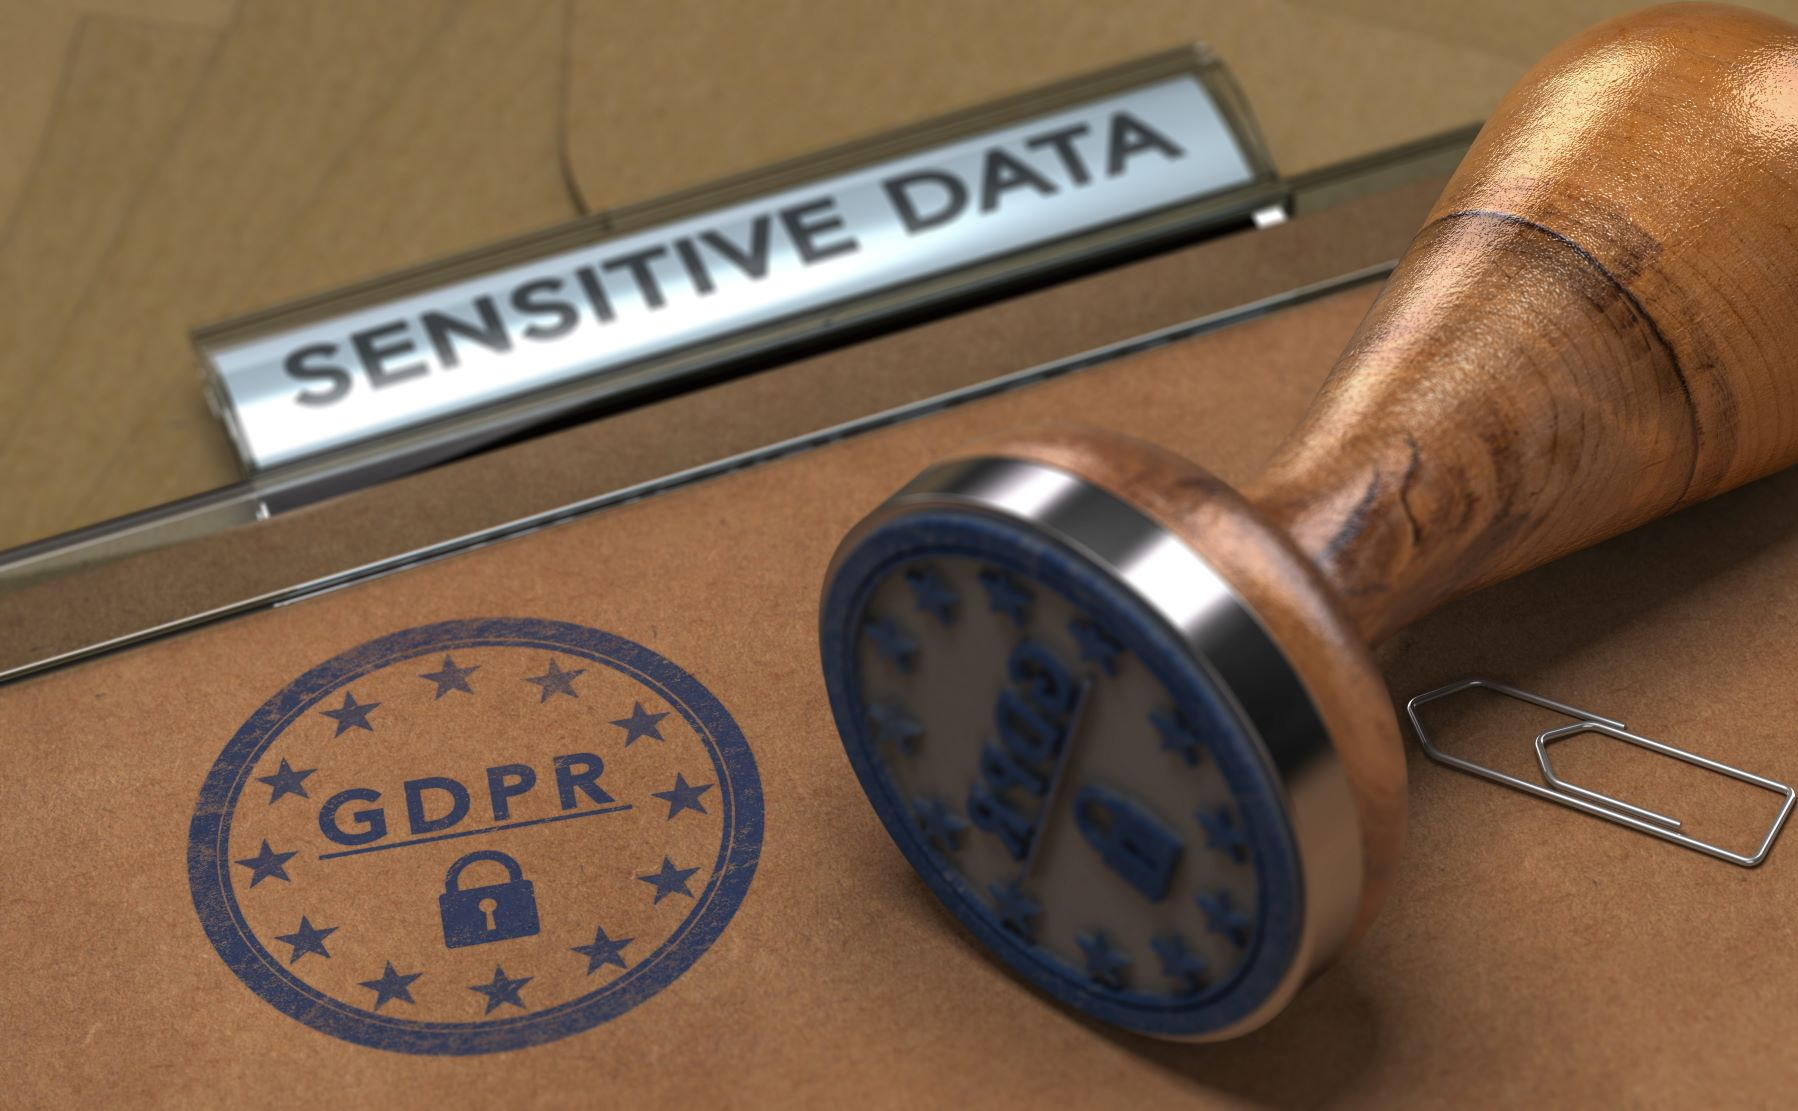 Publishing personal data online – Recent data breach examples